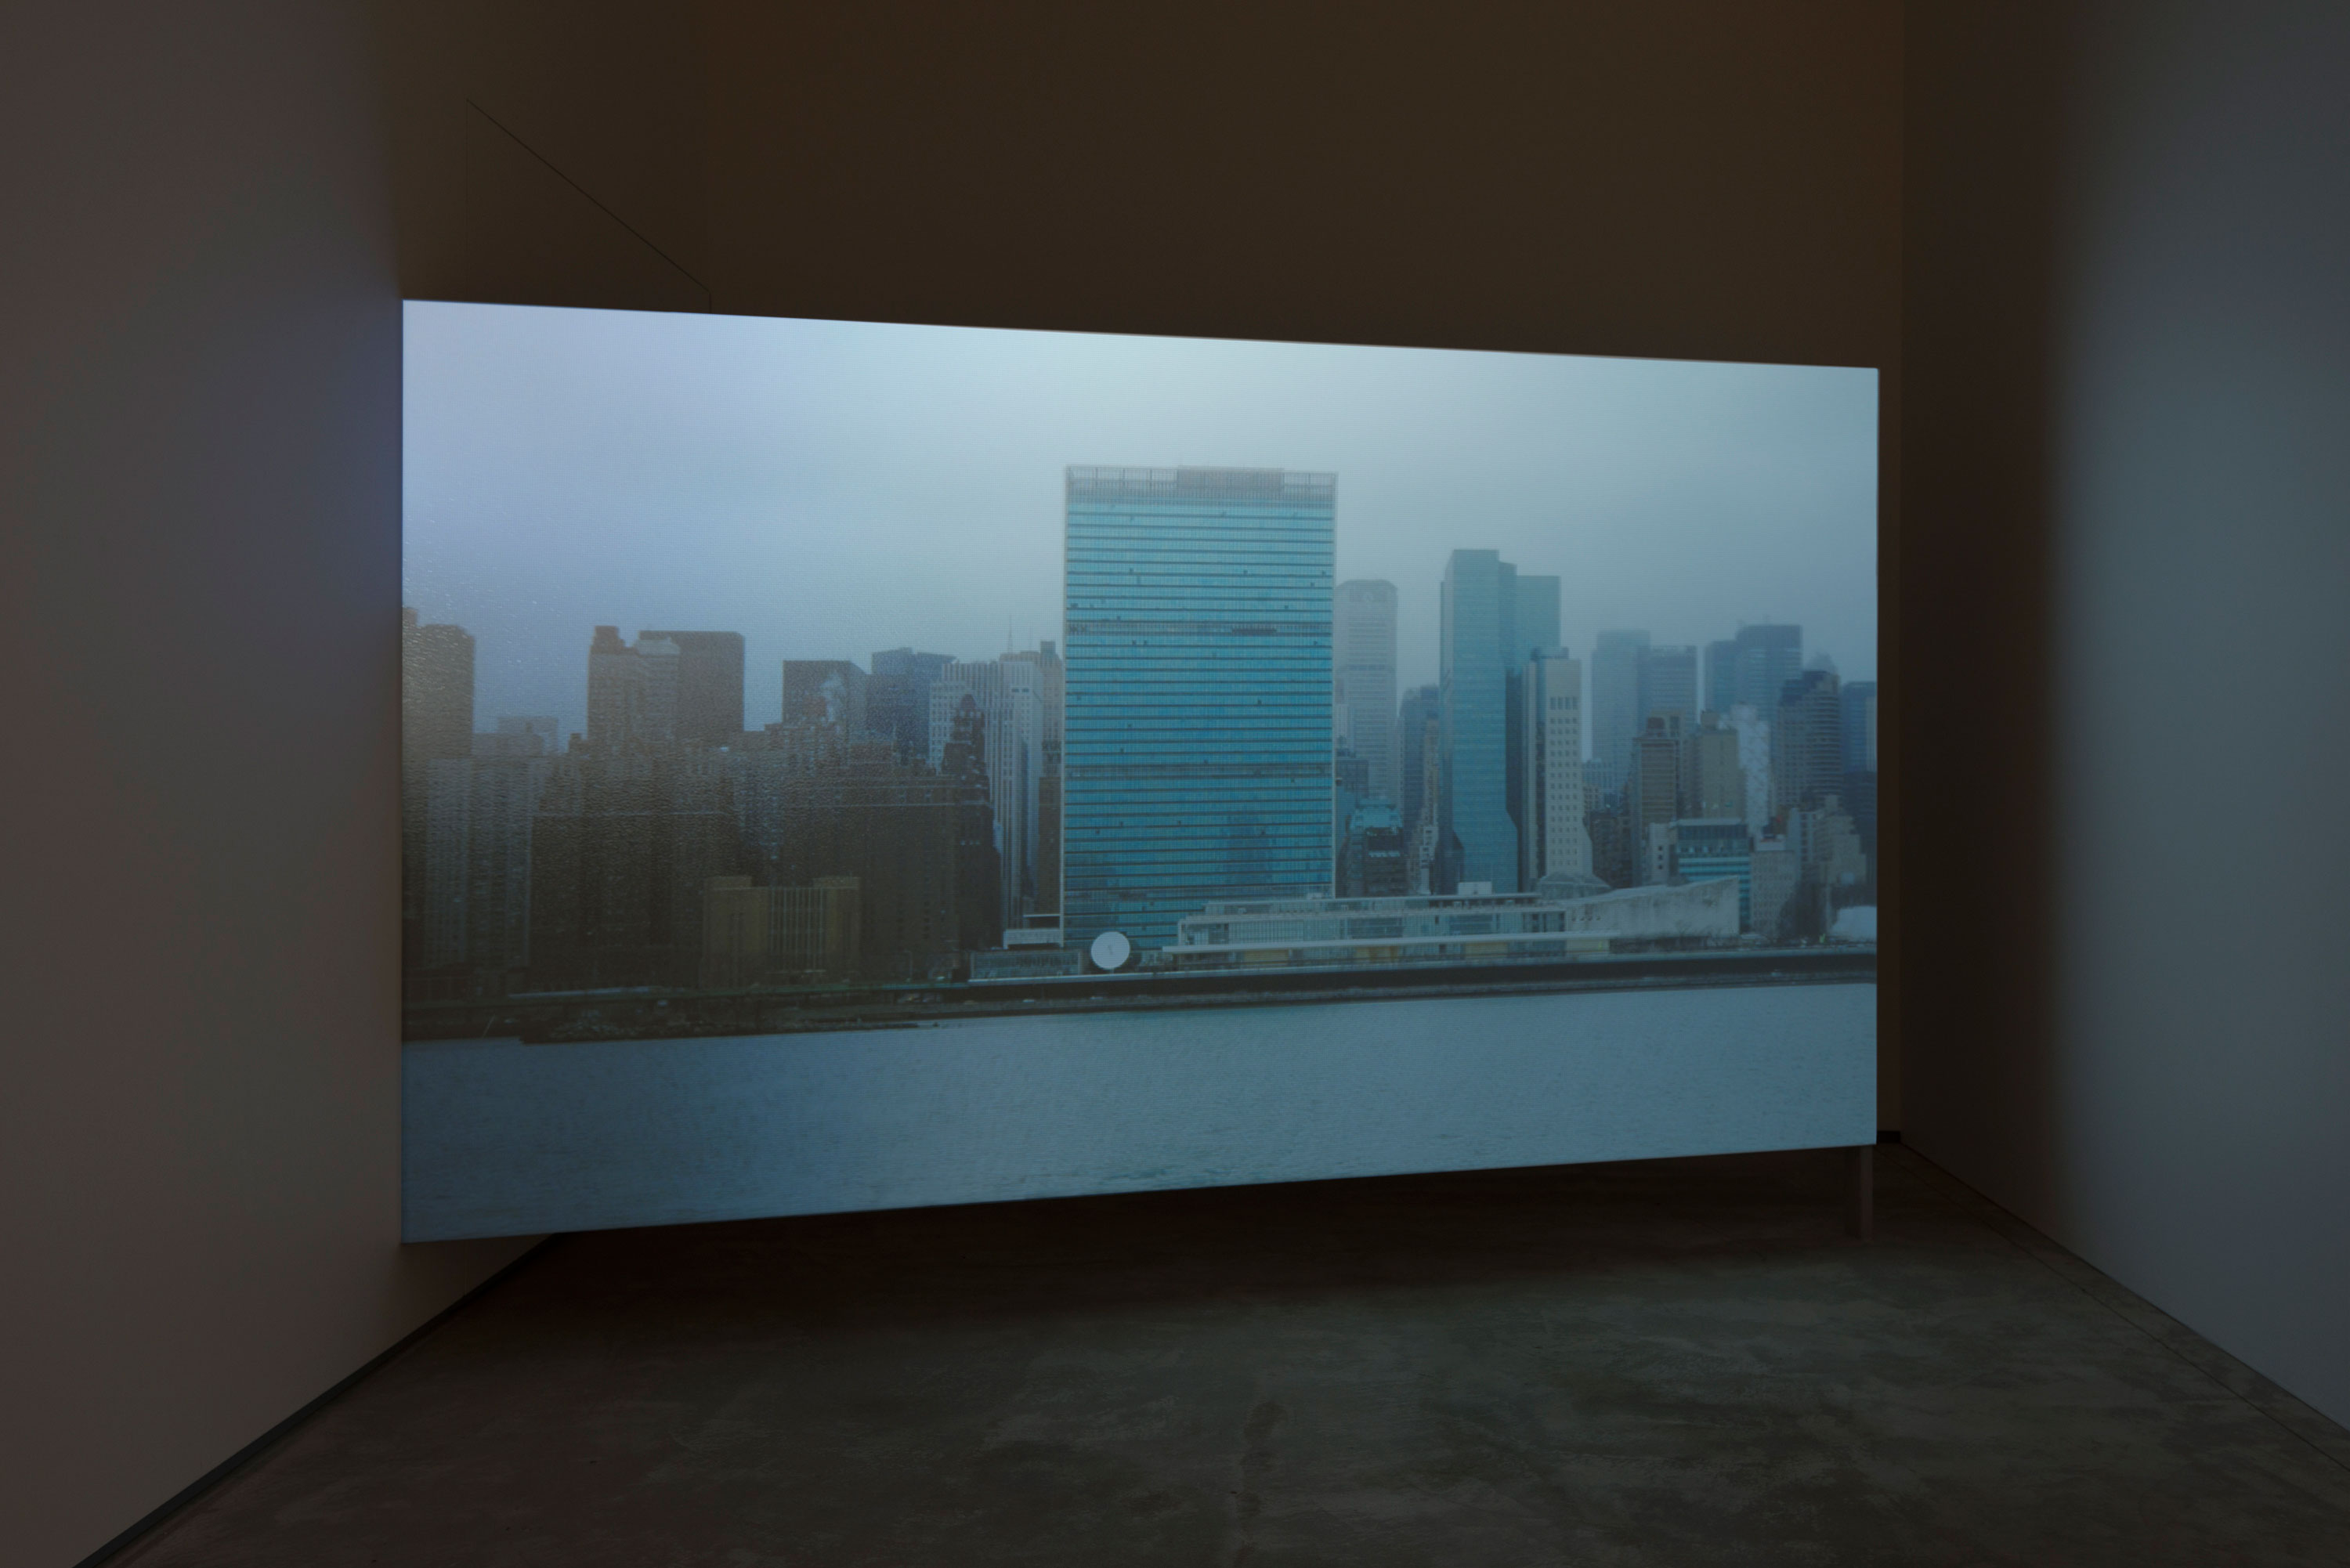 Erin Shirreff, vue d'installation: <em>ONU 2010</em>, image fixe, 2010, vidéo couleur, muet, 17 min, en boucle, Agnes Etherington Art Centre, Kingston, Ontario. Photo par Paul Litherland.